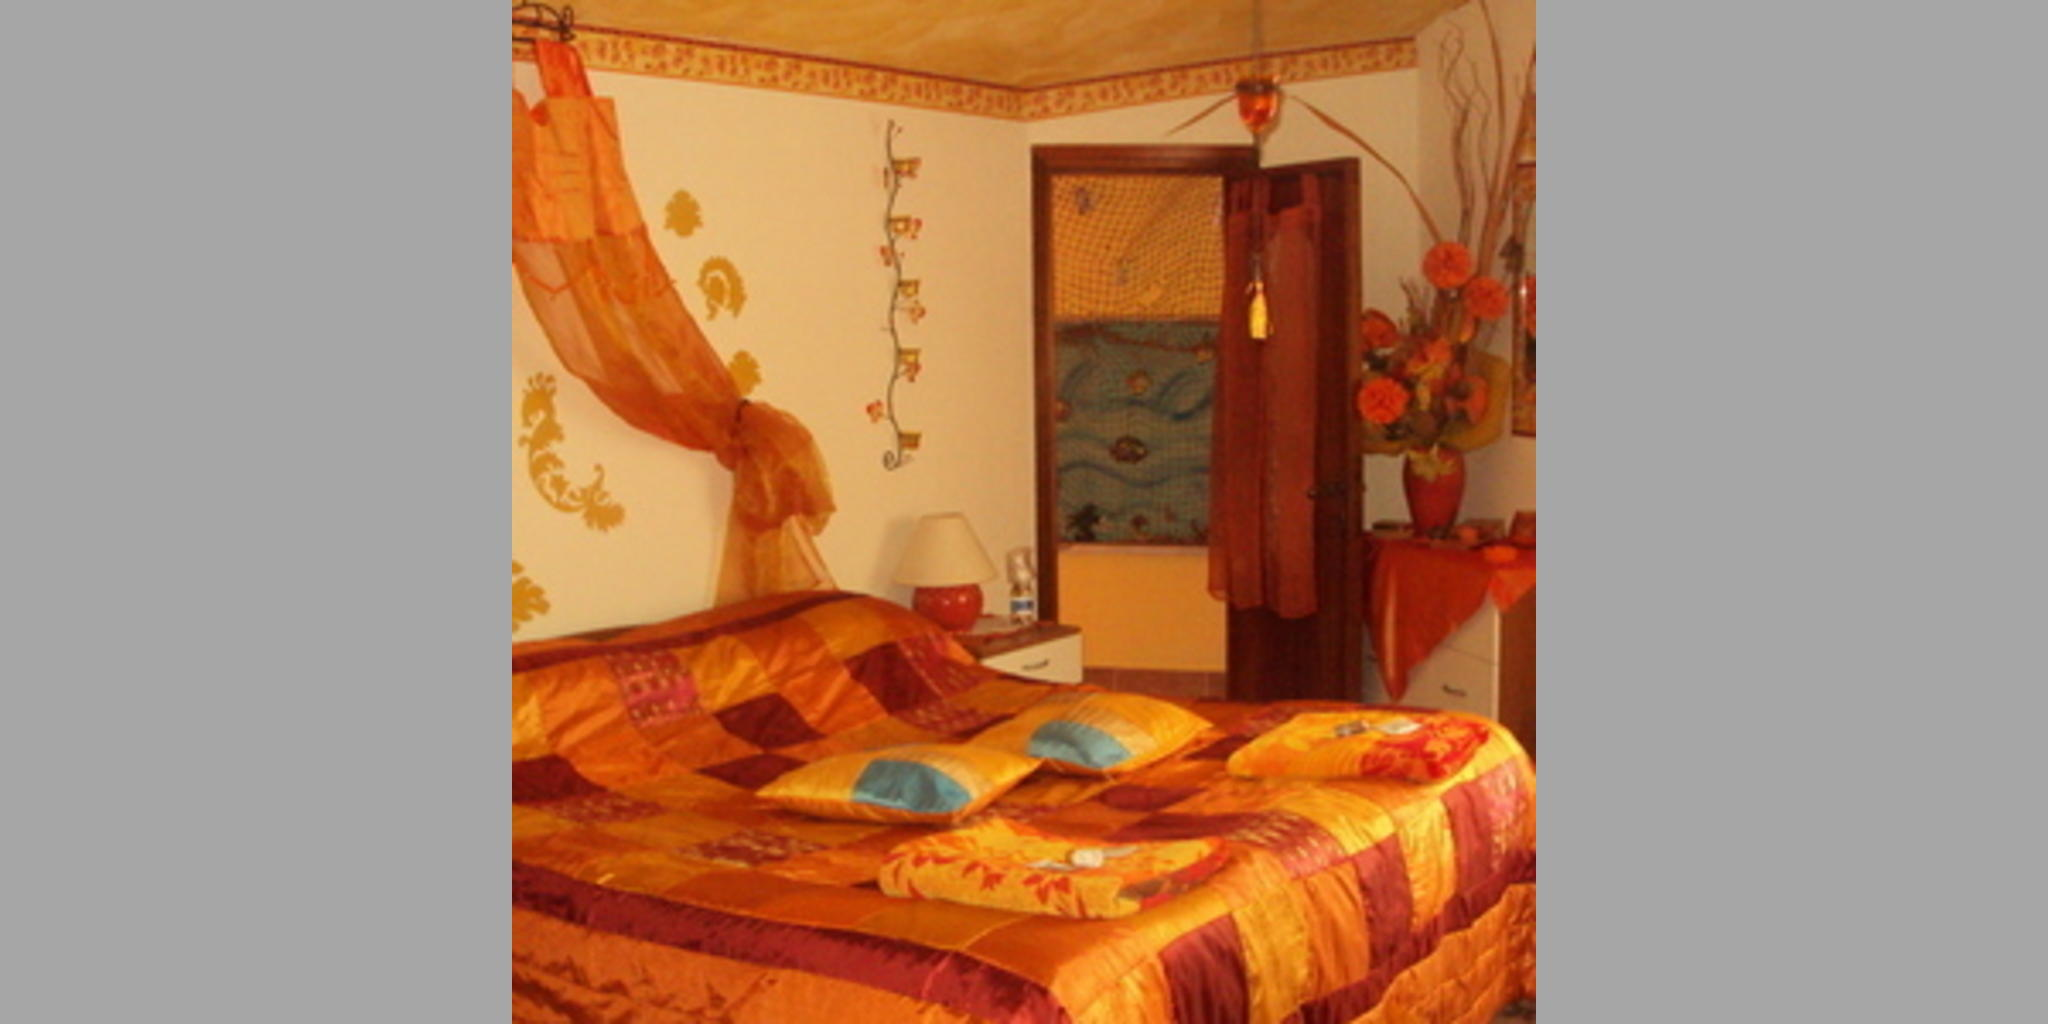 Bed & Breakfast Tempio Pausania - Mentana 5